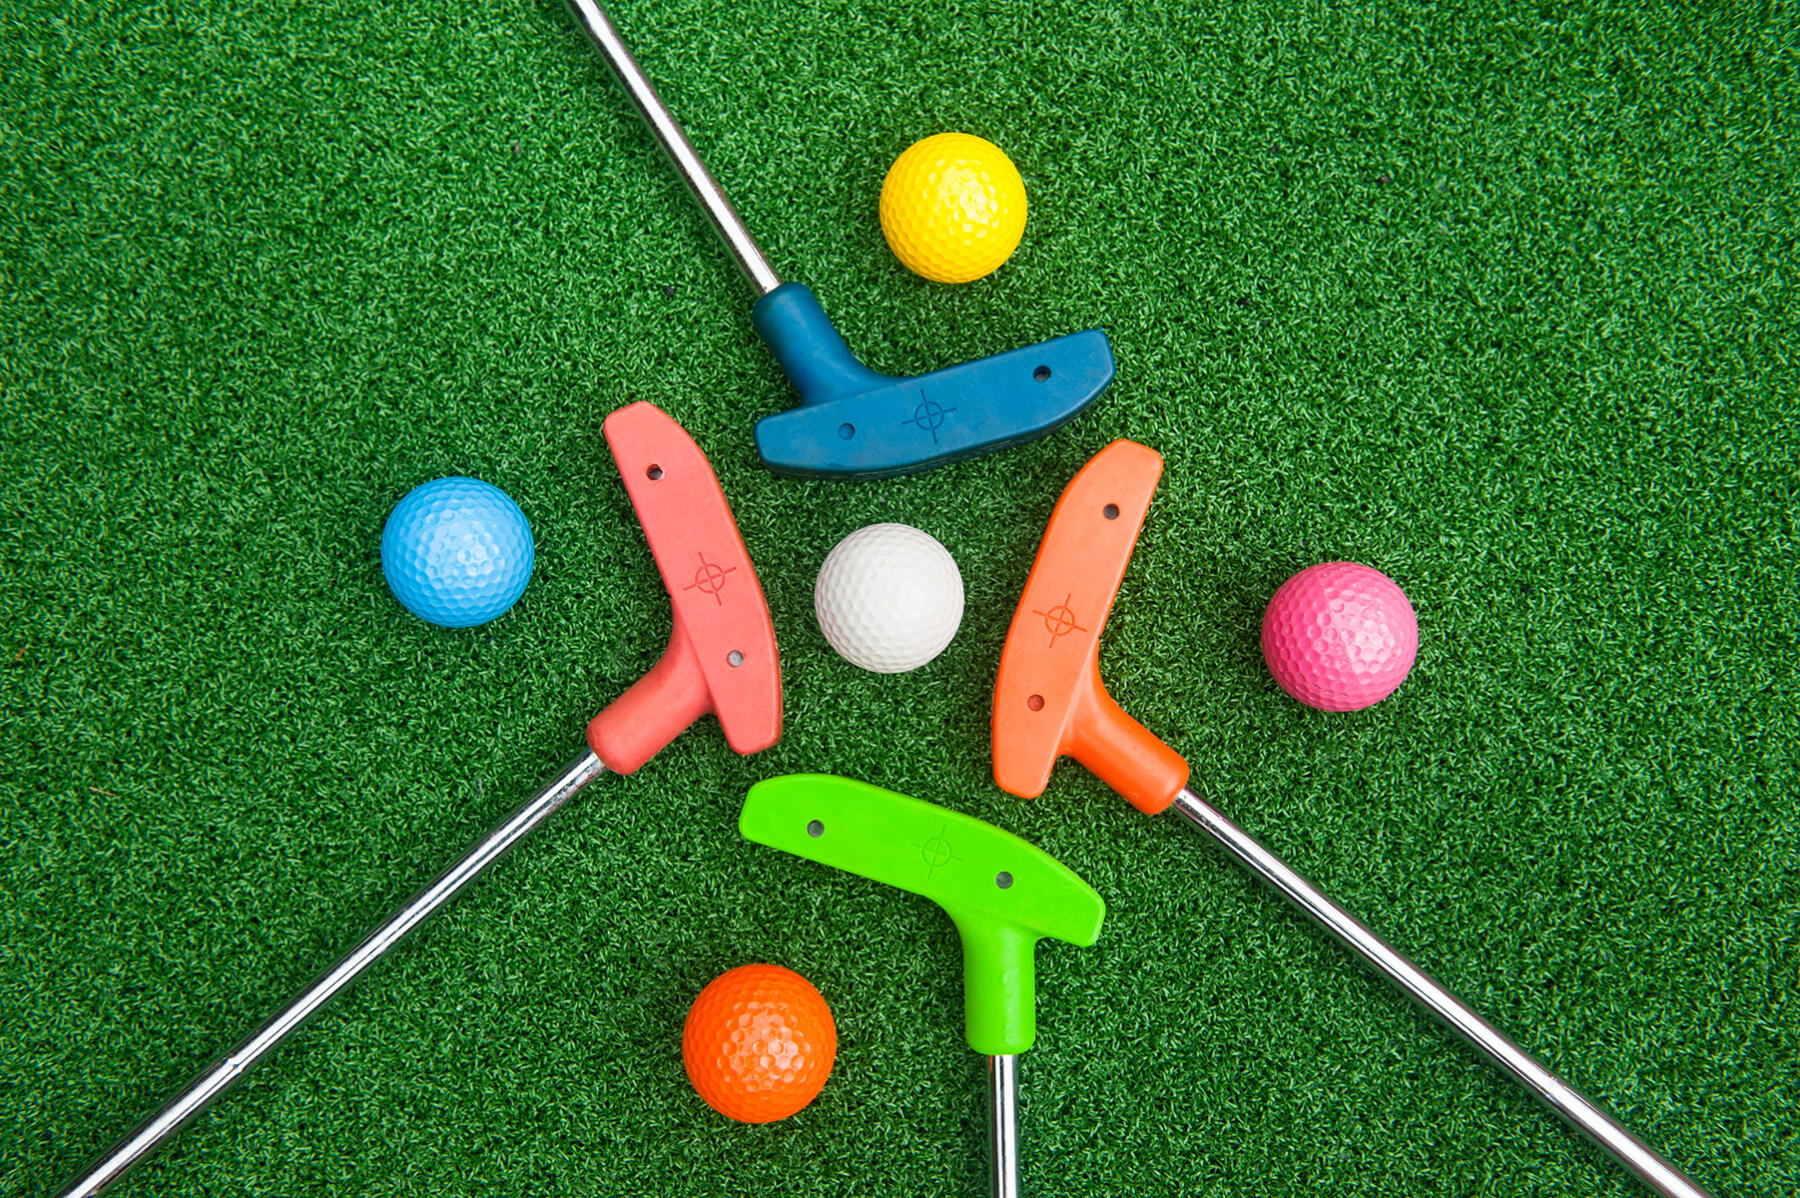 Four,Colorful,Golf,Putters,With,Golf,Balls,On,Synthetic,Grass